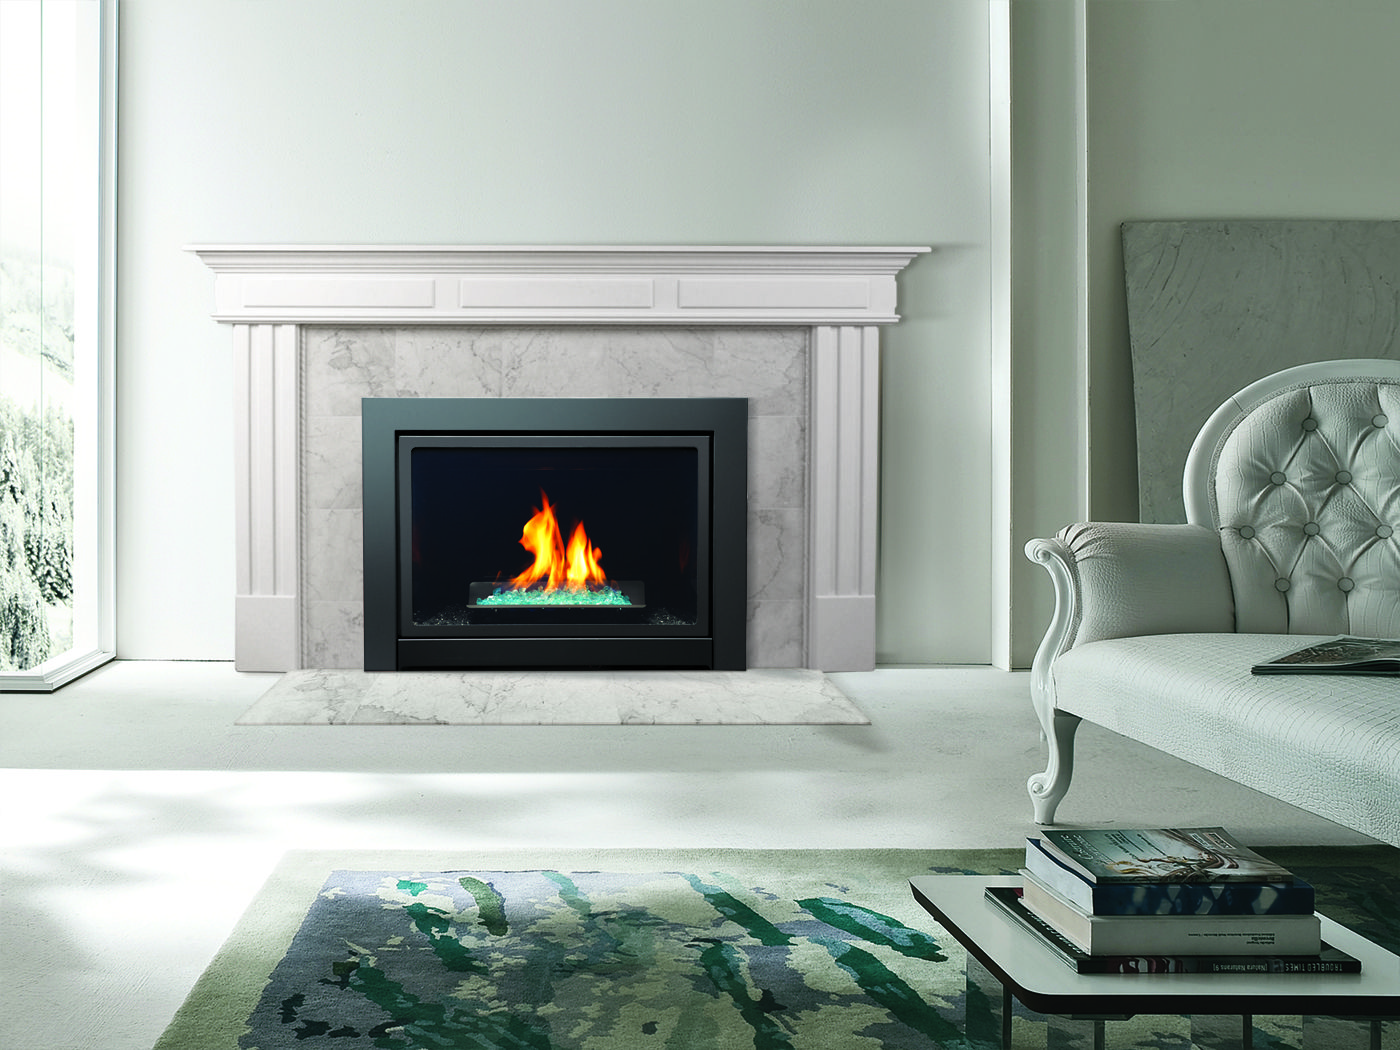 how to light pilot light on superior gas fireplace